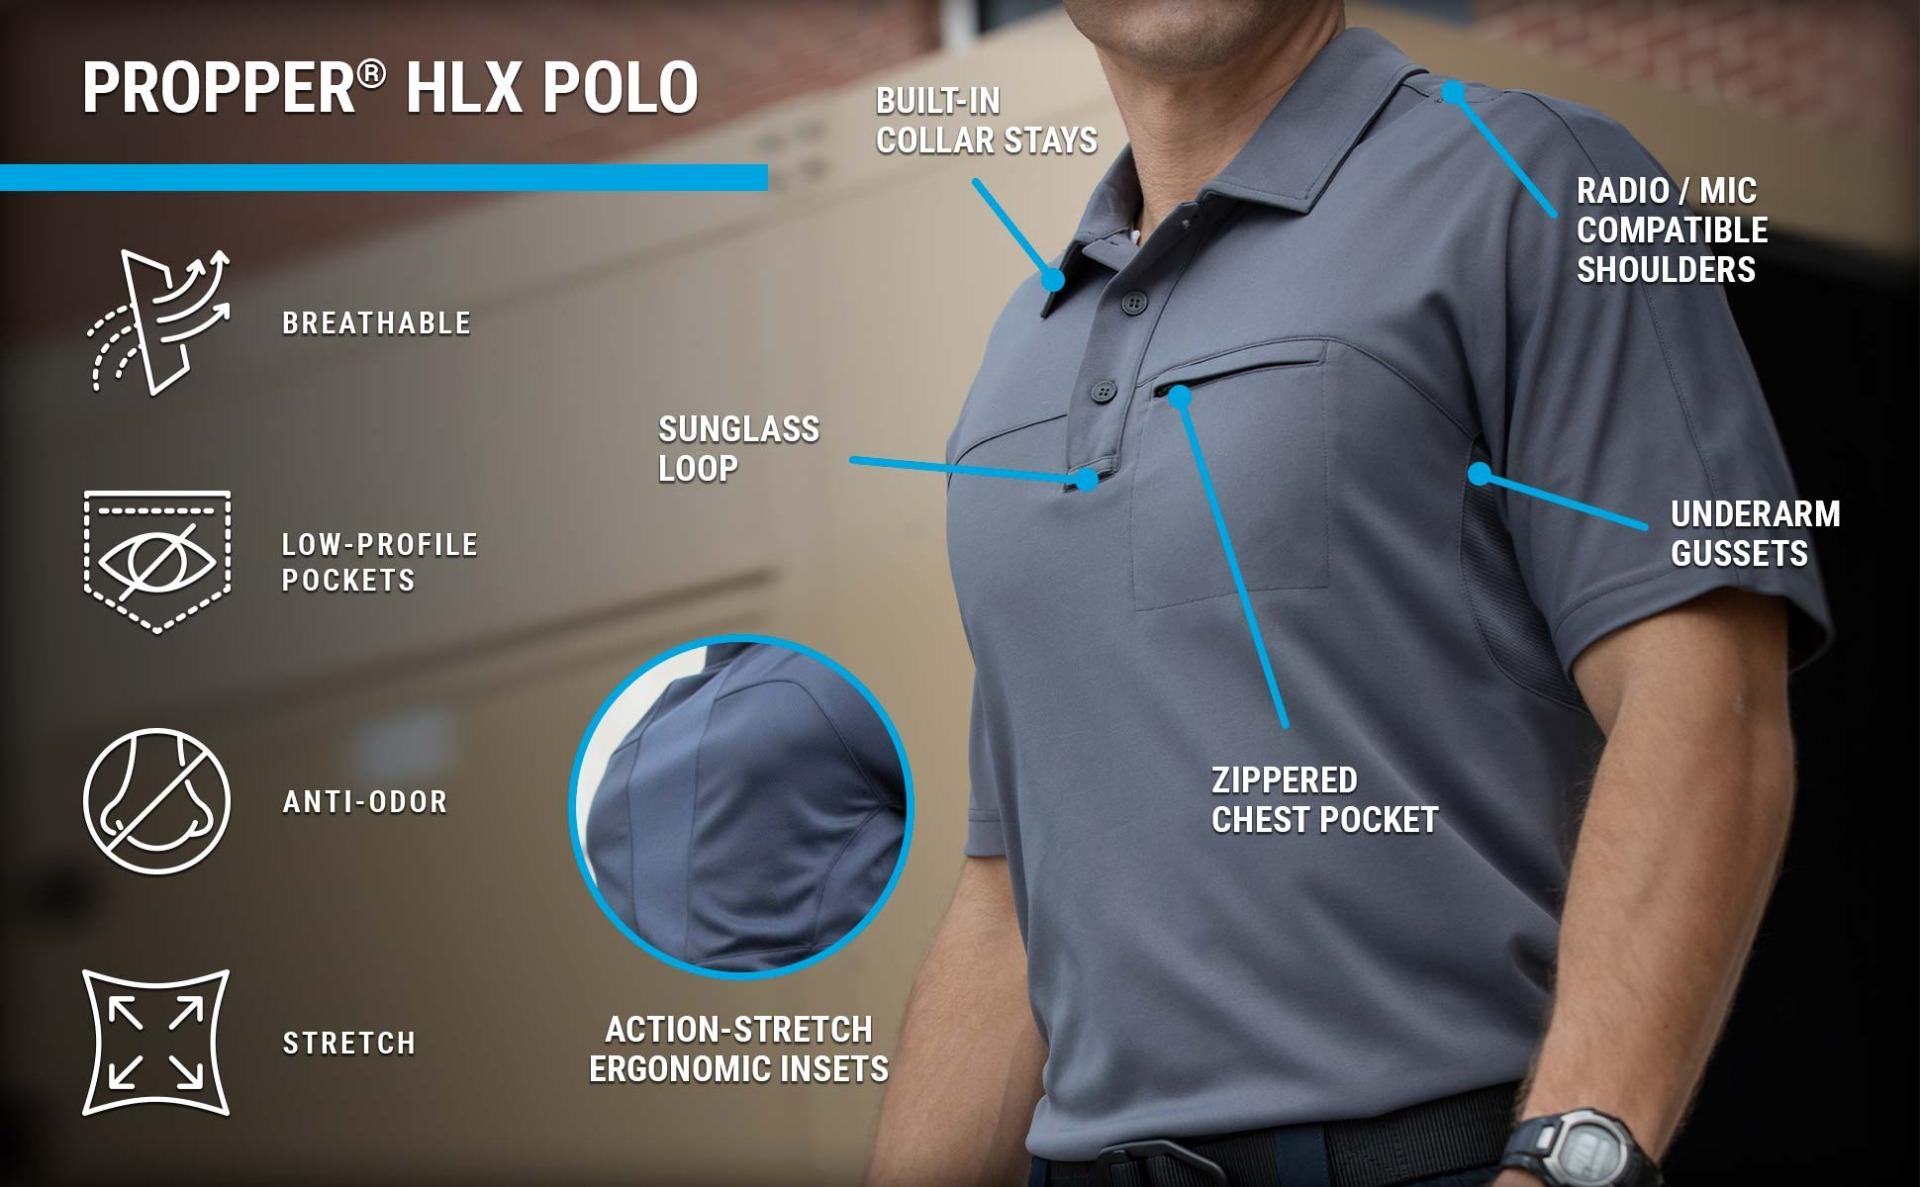 The casual HLX polo features action stretch panels, a zippered chest pocket, anti-odor technology and underarm gussets.